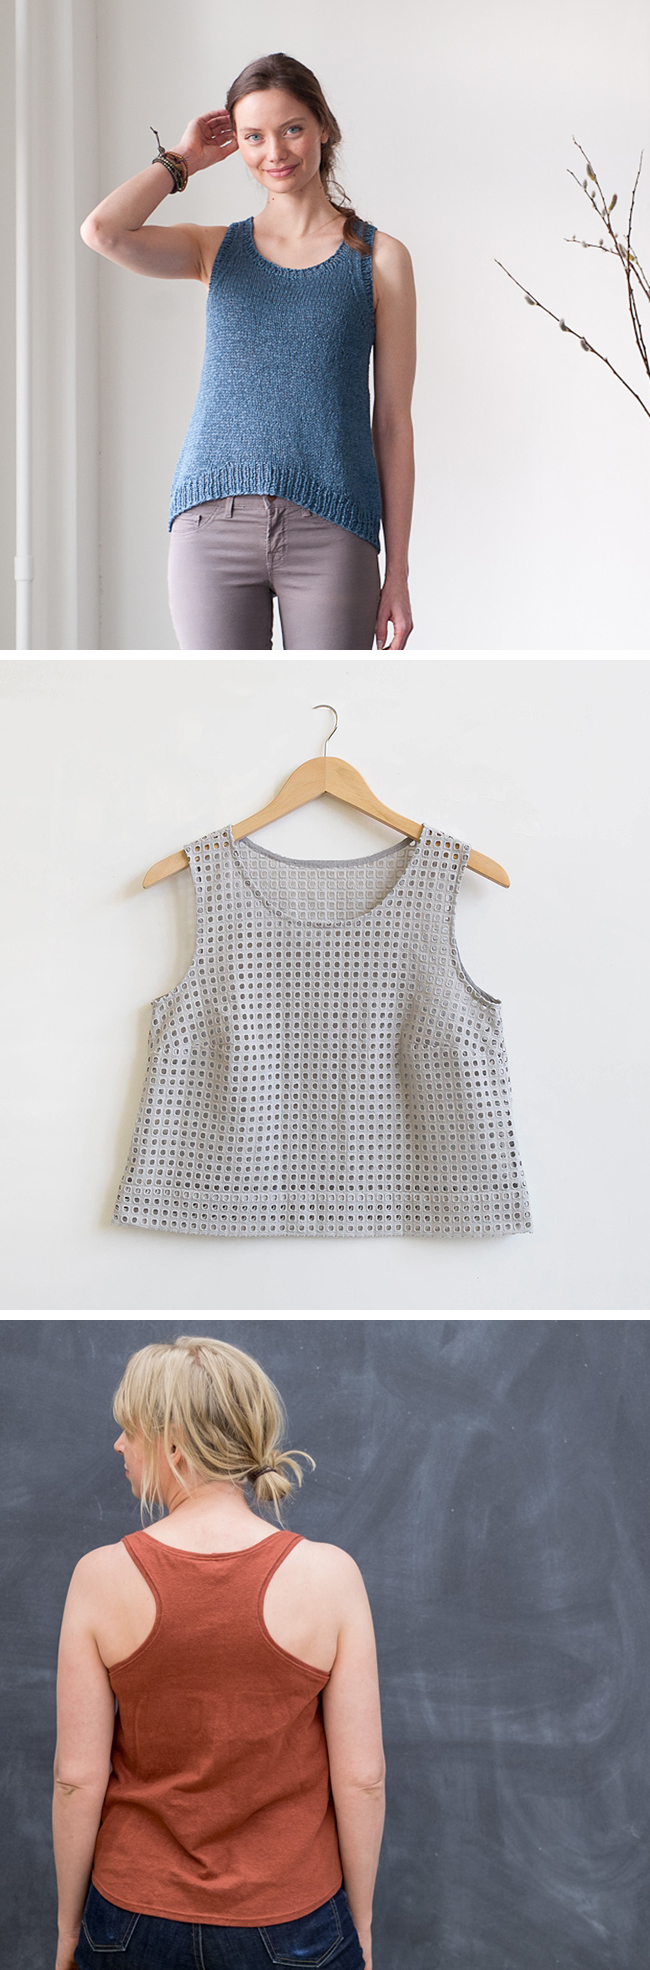 Make Your Own Basics: The tank top (knitted and sewn)